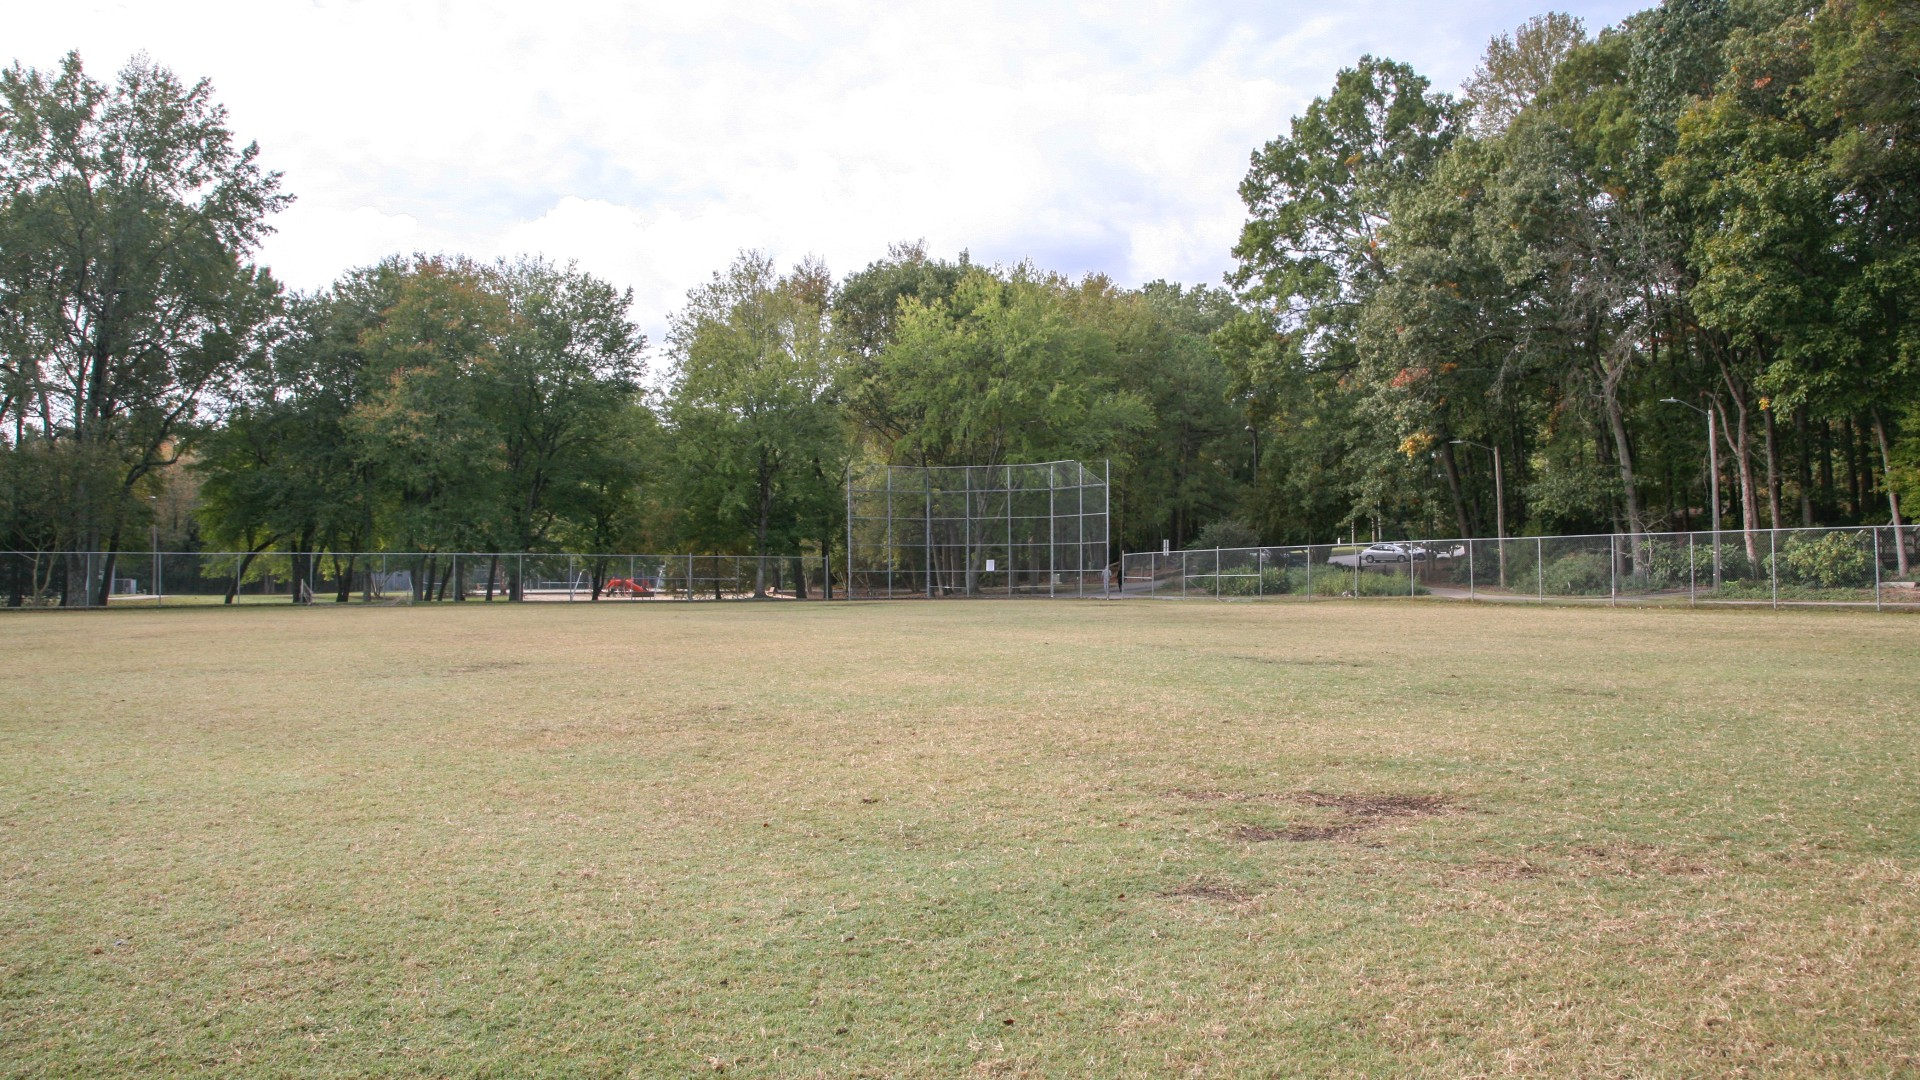 A second multi-use open field at Brentwood Park